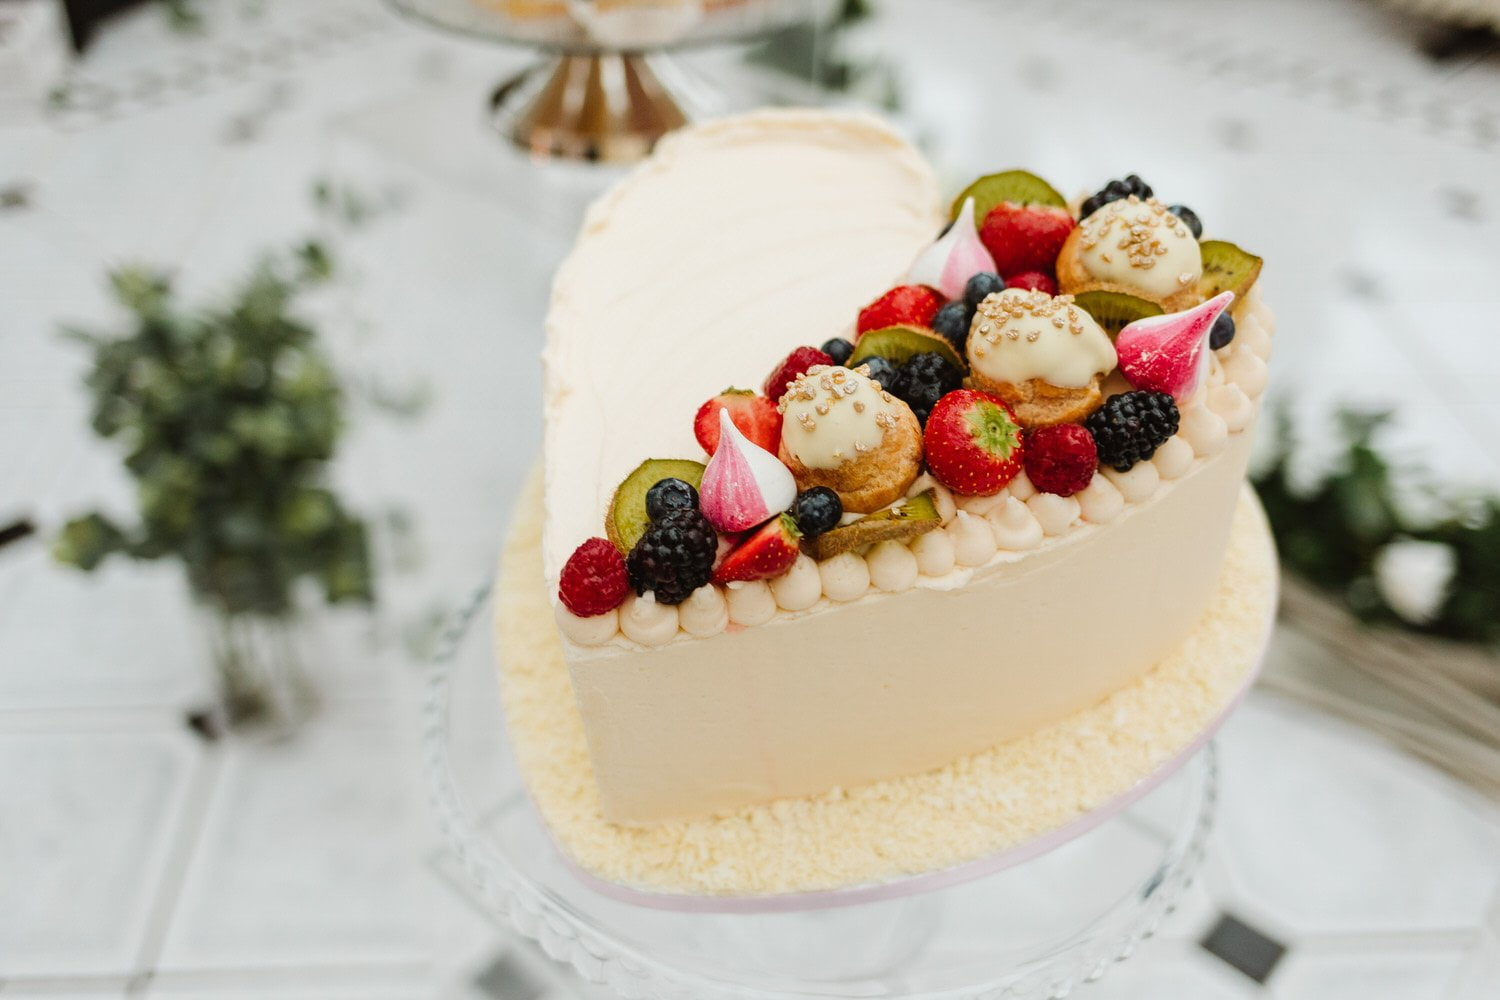 Choosing your wedding cake supplier